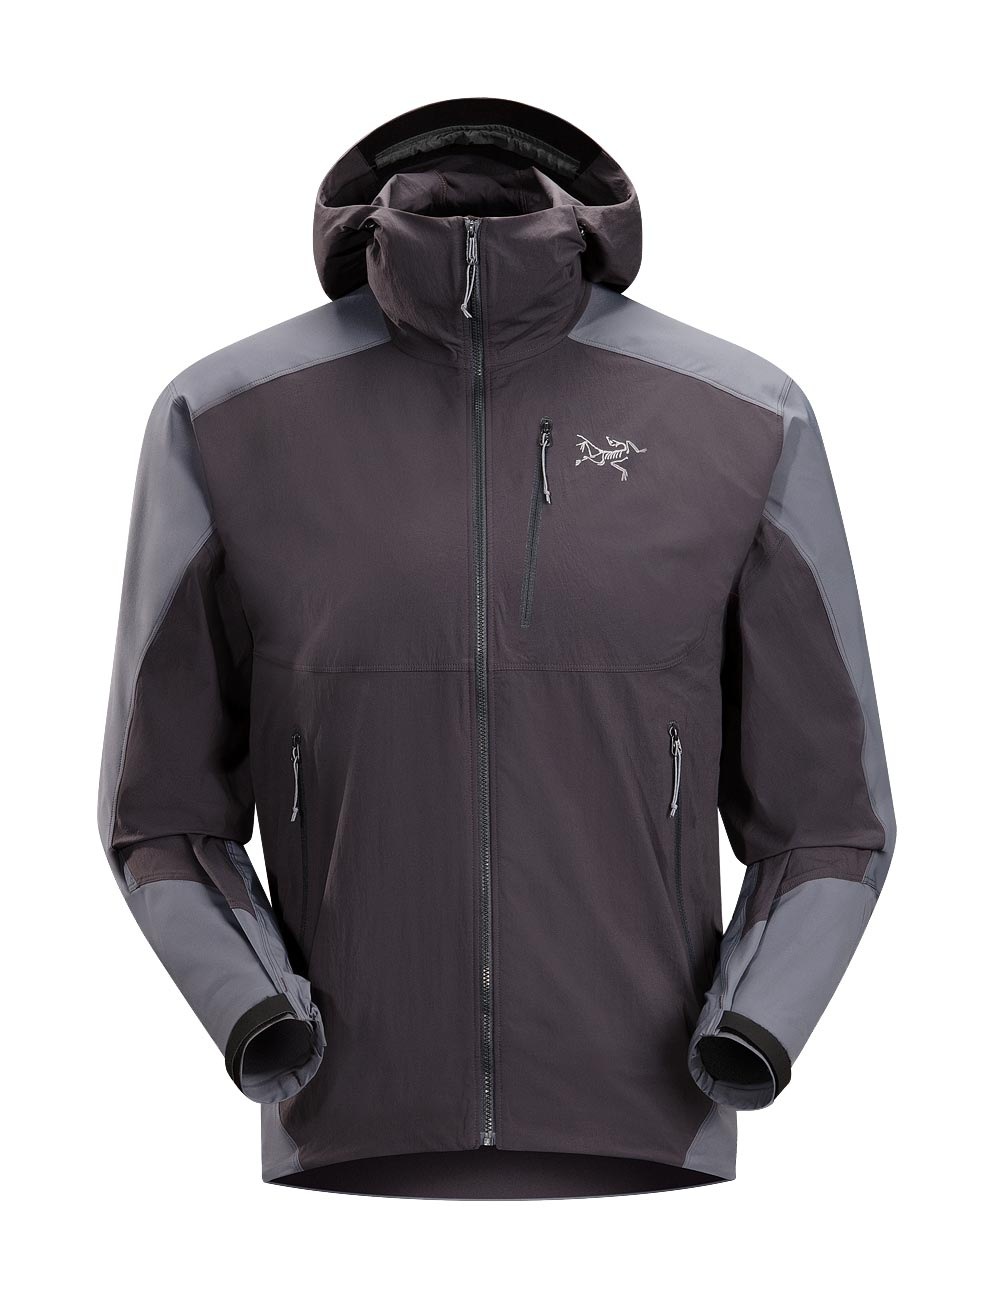 Arcteryx Jackets Men Damascus Steel Gamma SL Hybrid Hoody - New